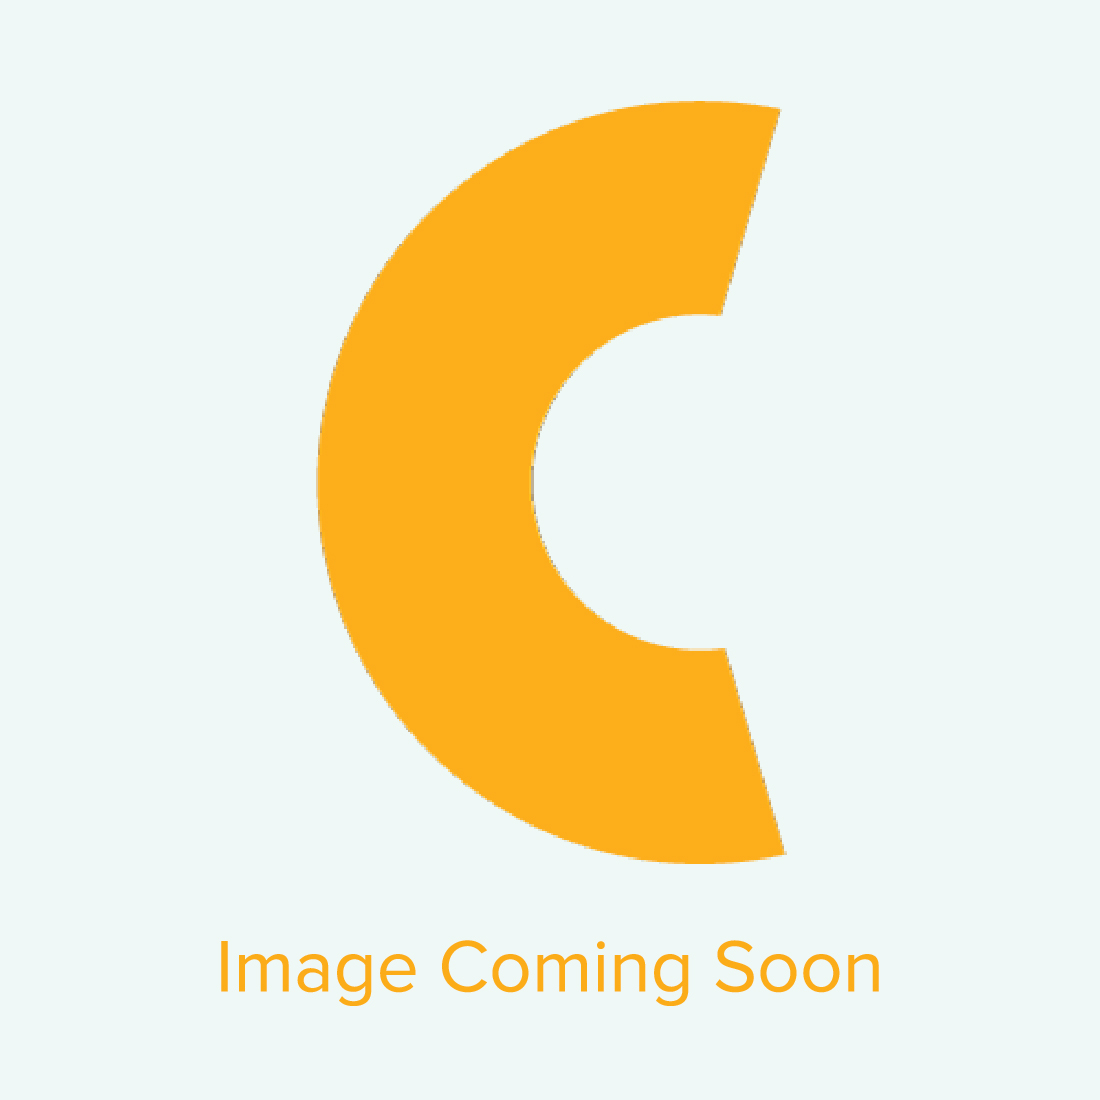 ColorPrint PU Gloss Printable Heat Transfer Vinyl